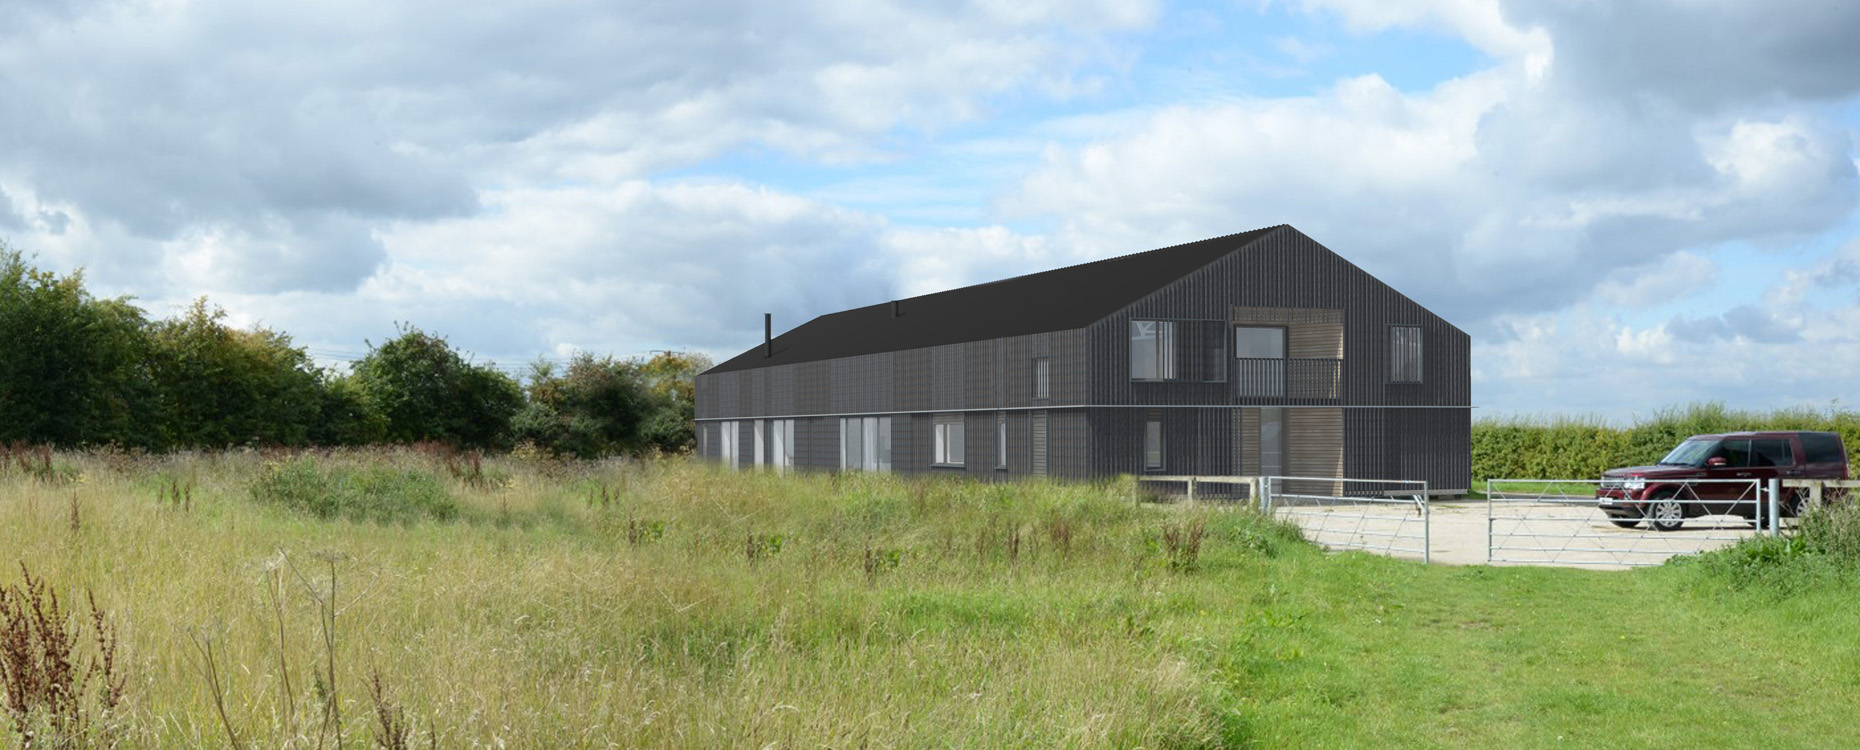 CaSA-Cambridge Barn-Proposed-External View-BAN.jpg